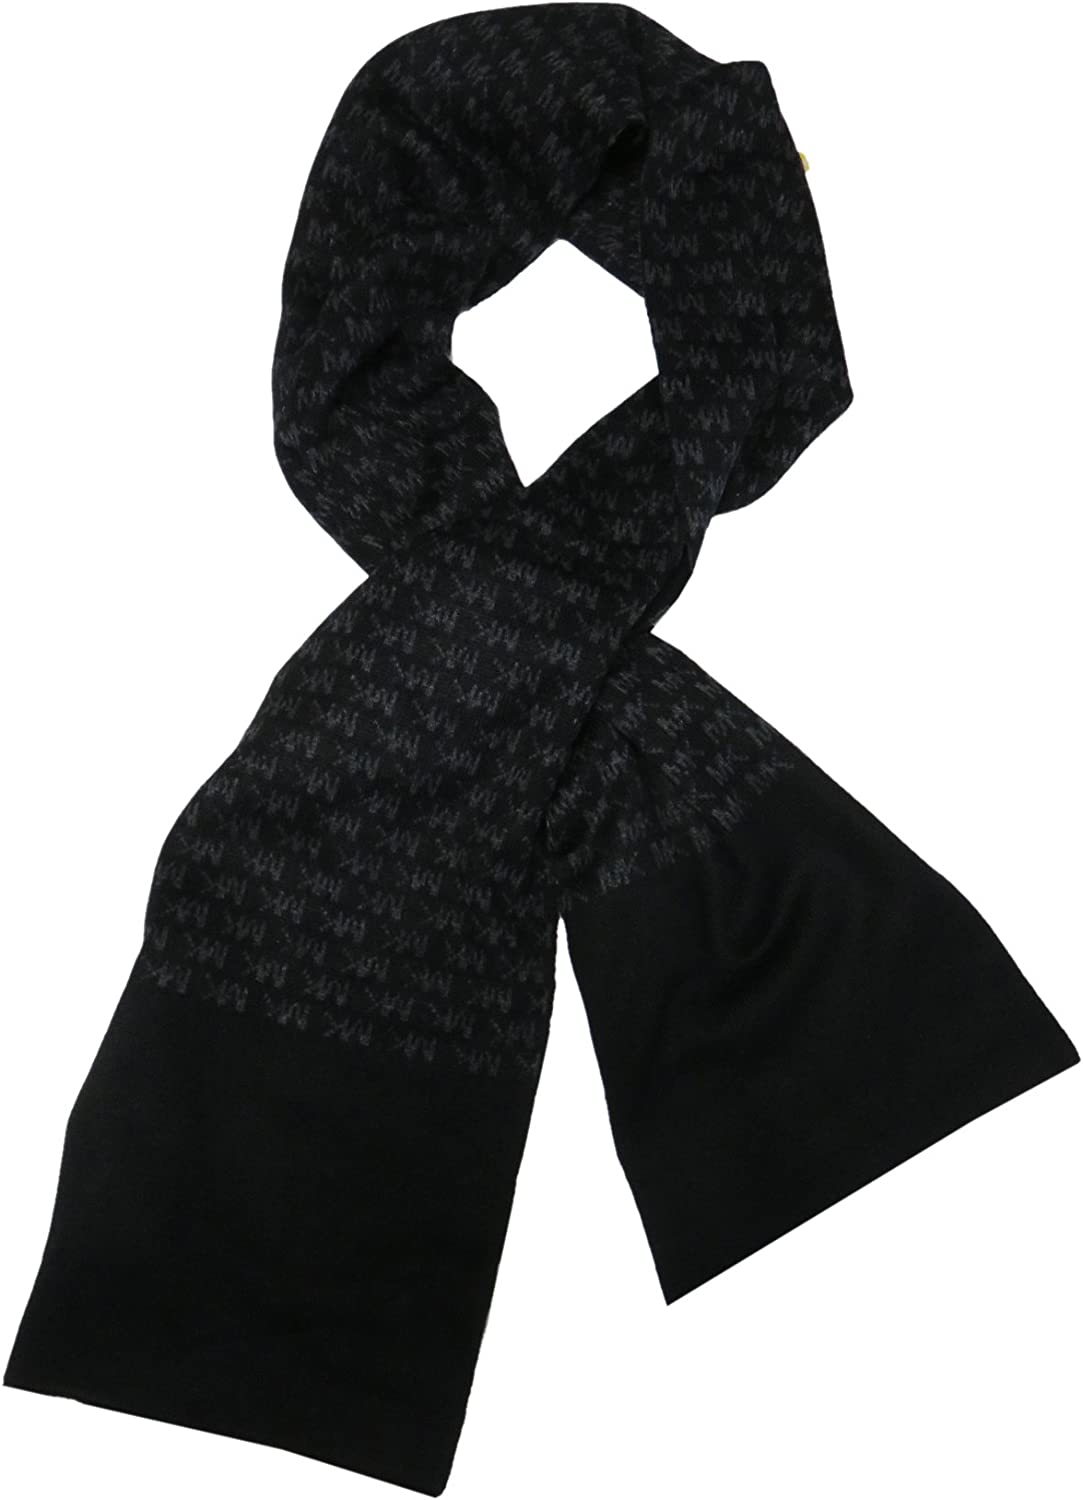 Michael Kors Men's Repeat Logo New sold out Shipping Free Black Jacquard Scarf